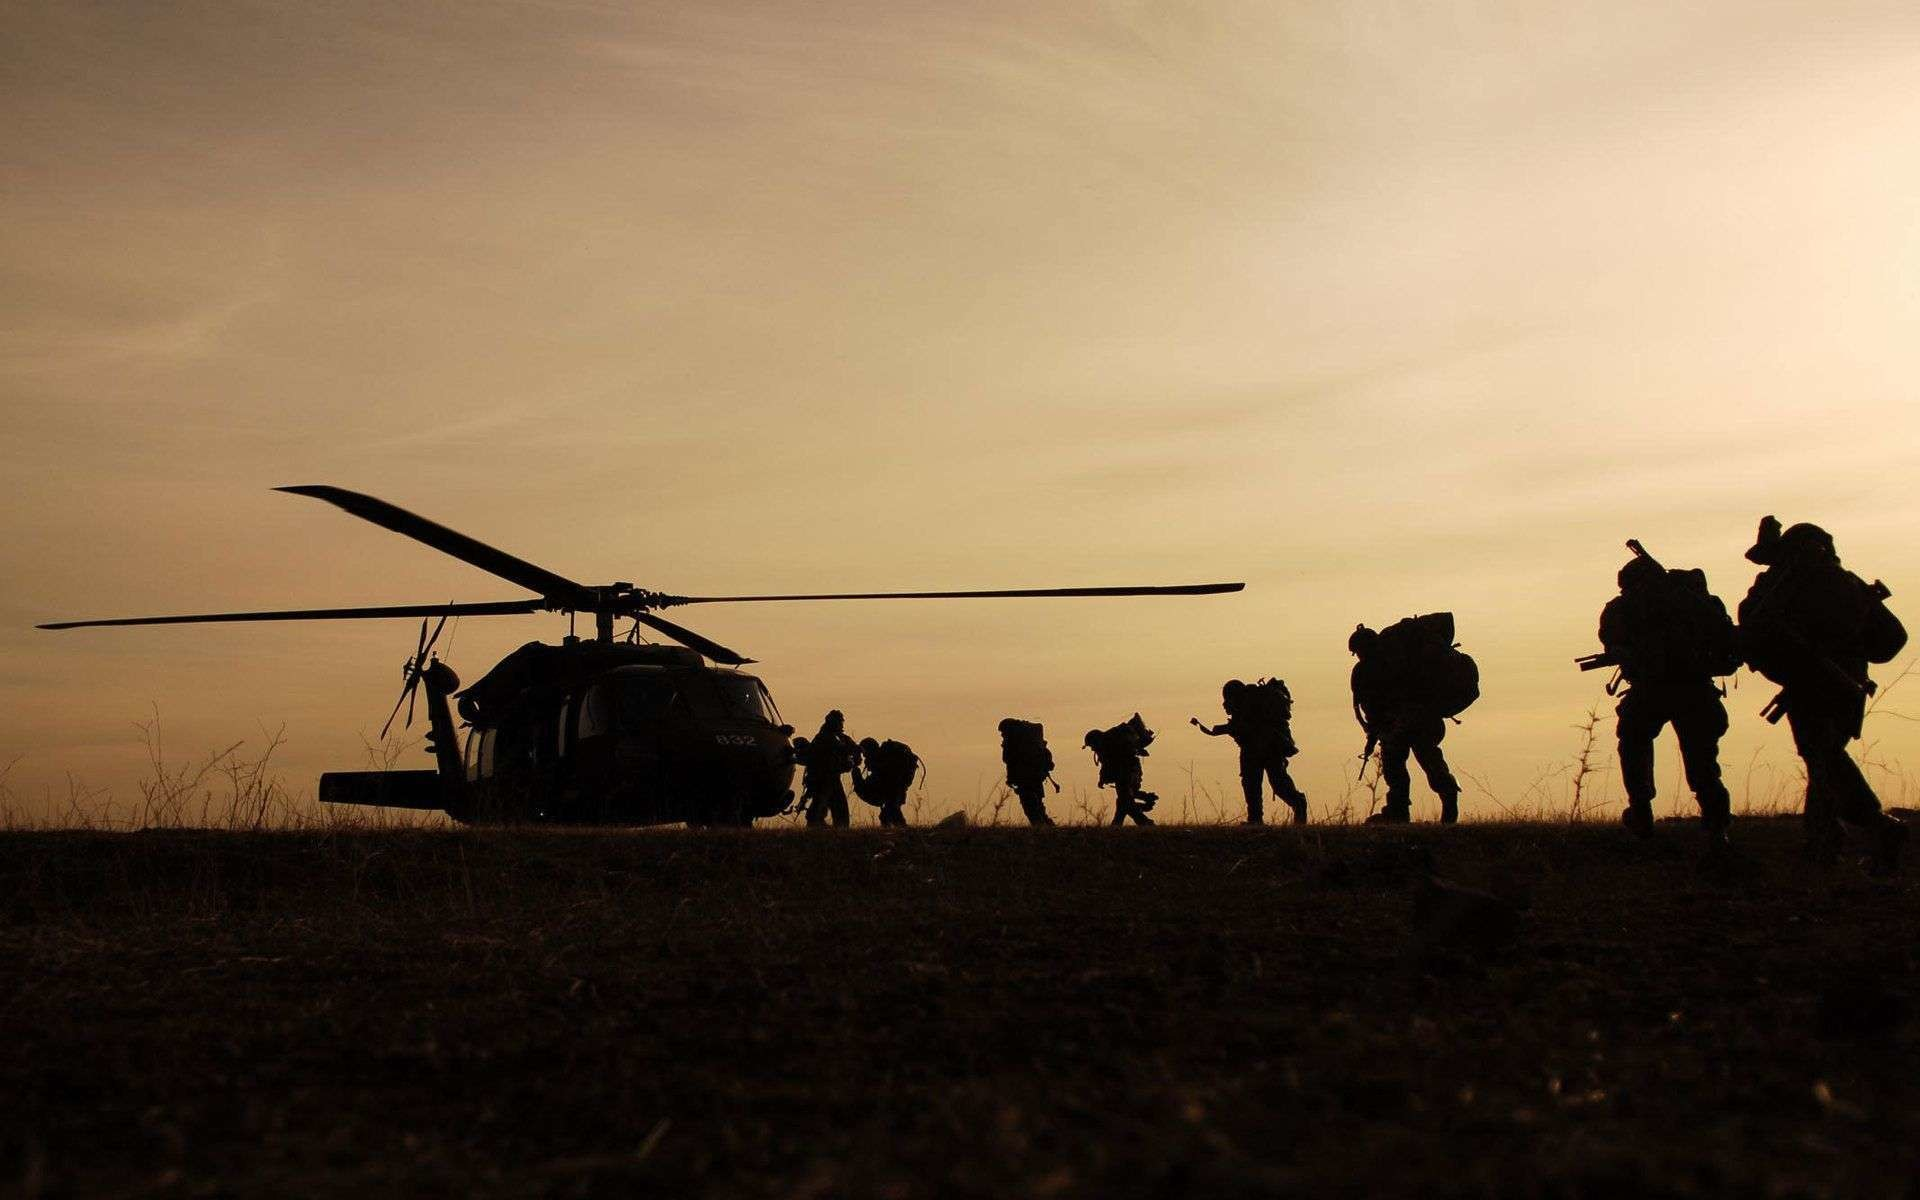 Latest gallery of army wallpaper and military wallpaper. Free to get this  full hd us army wallpaper and army hd wallpaper from only our site.